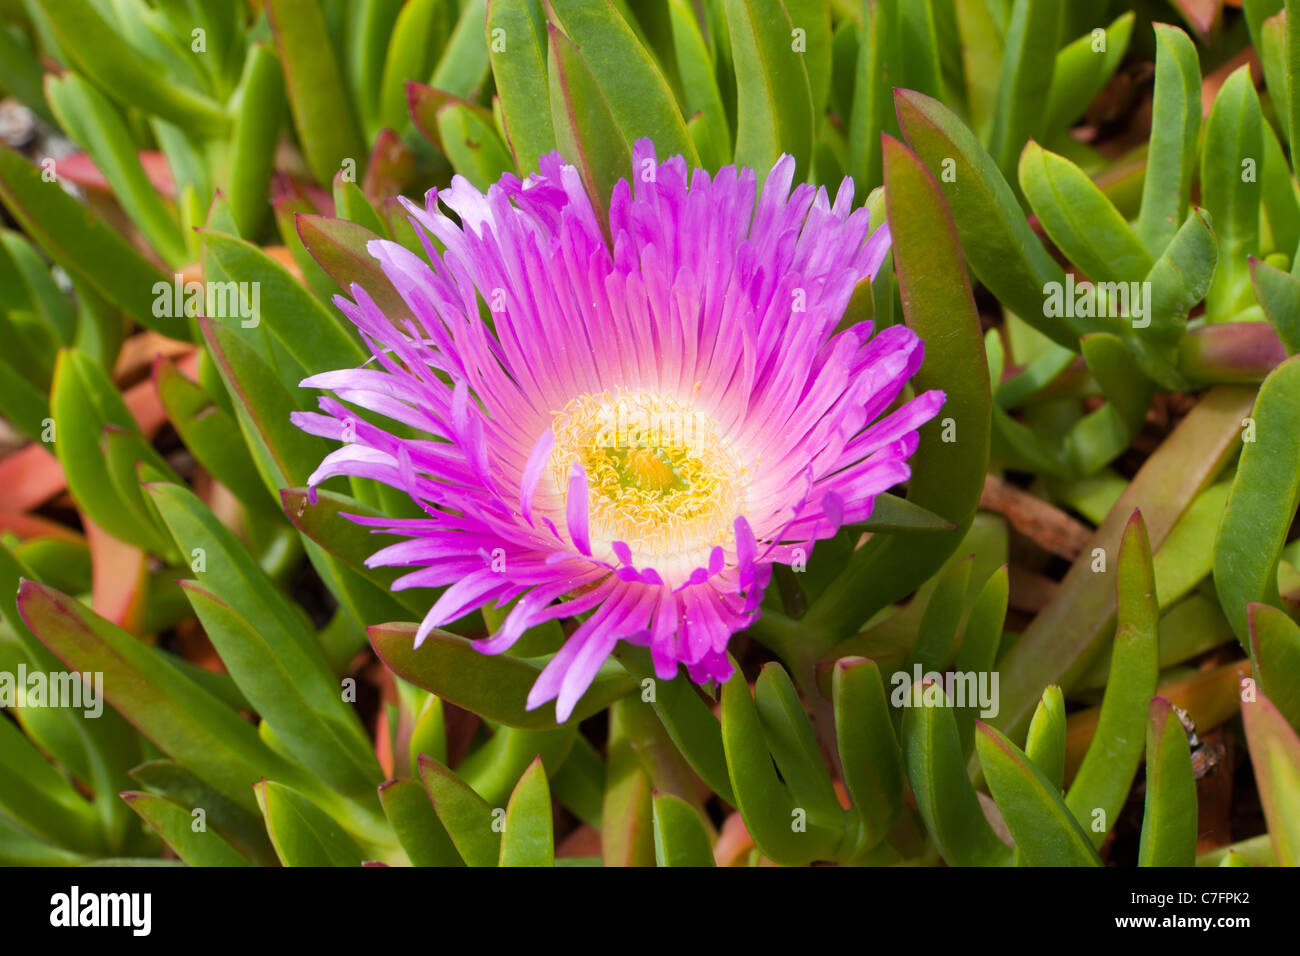 Mesembryanthemum Livingstone Daisy Hottentot Fig growing on the cliff at Fistral Bay, Newquay, Cornwall - Stock Image